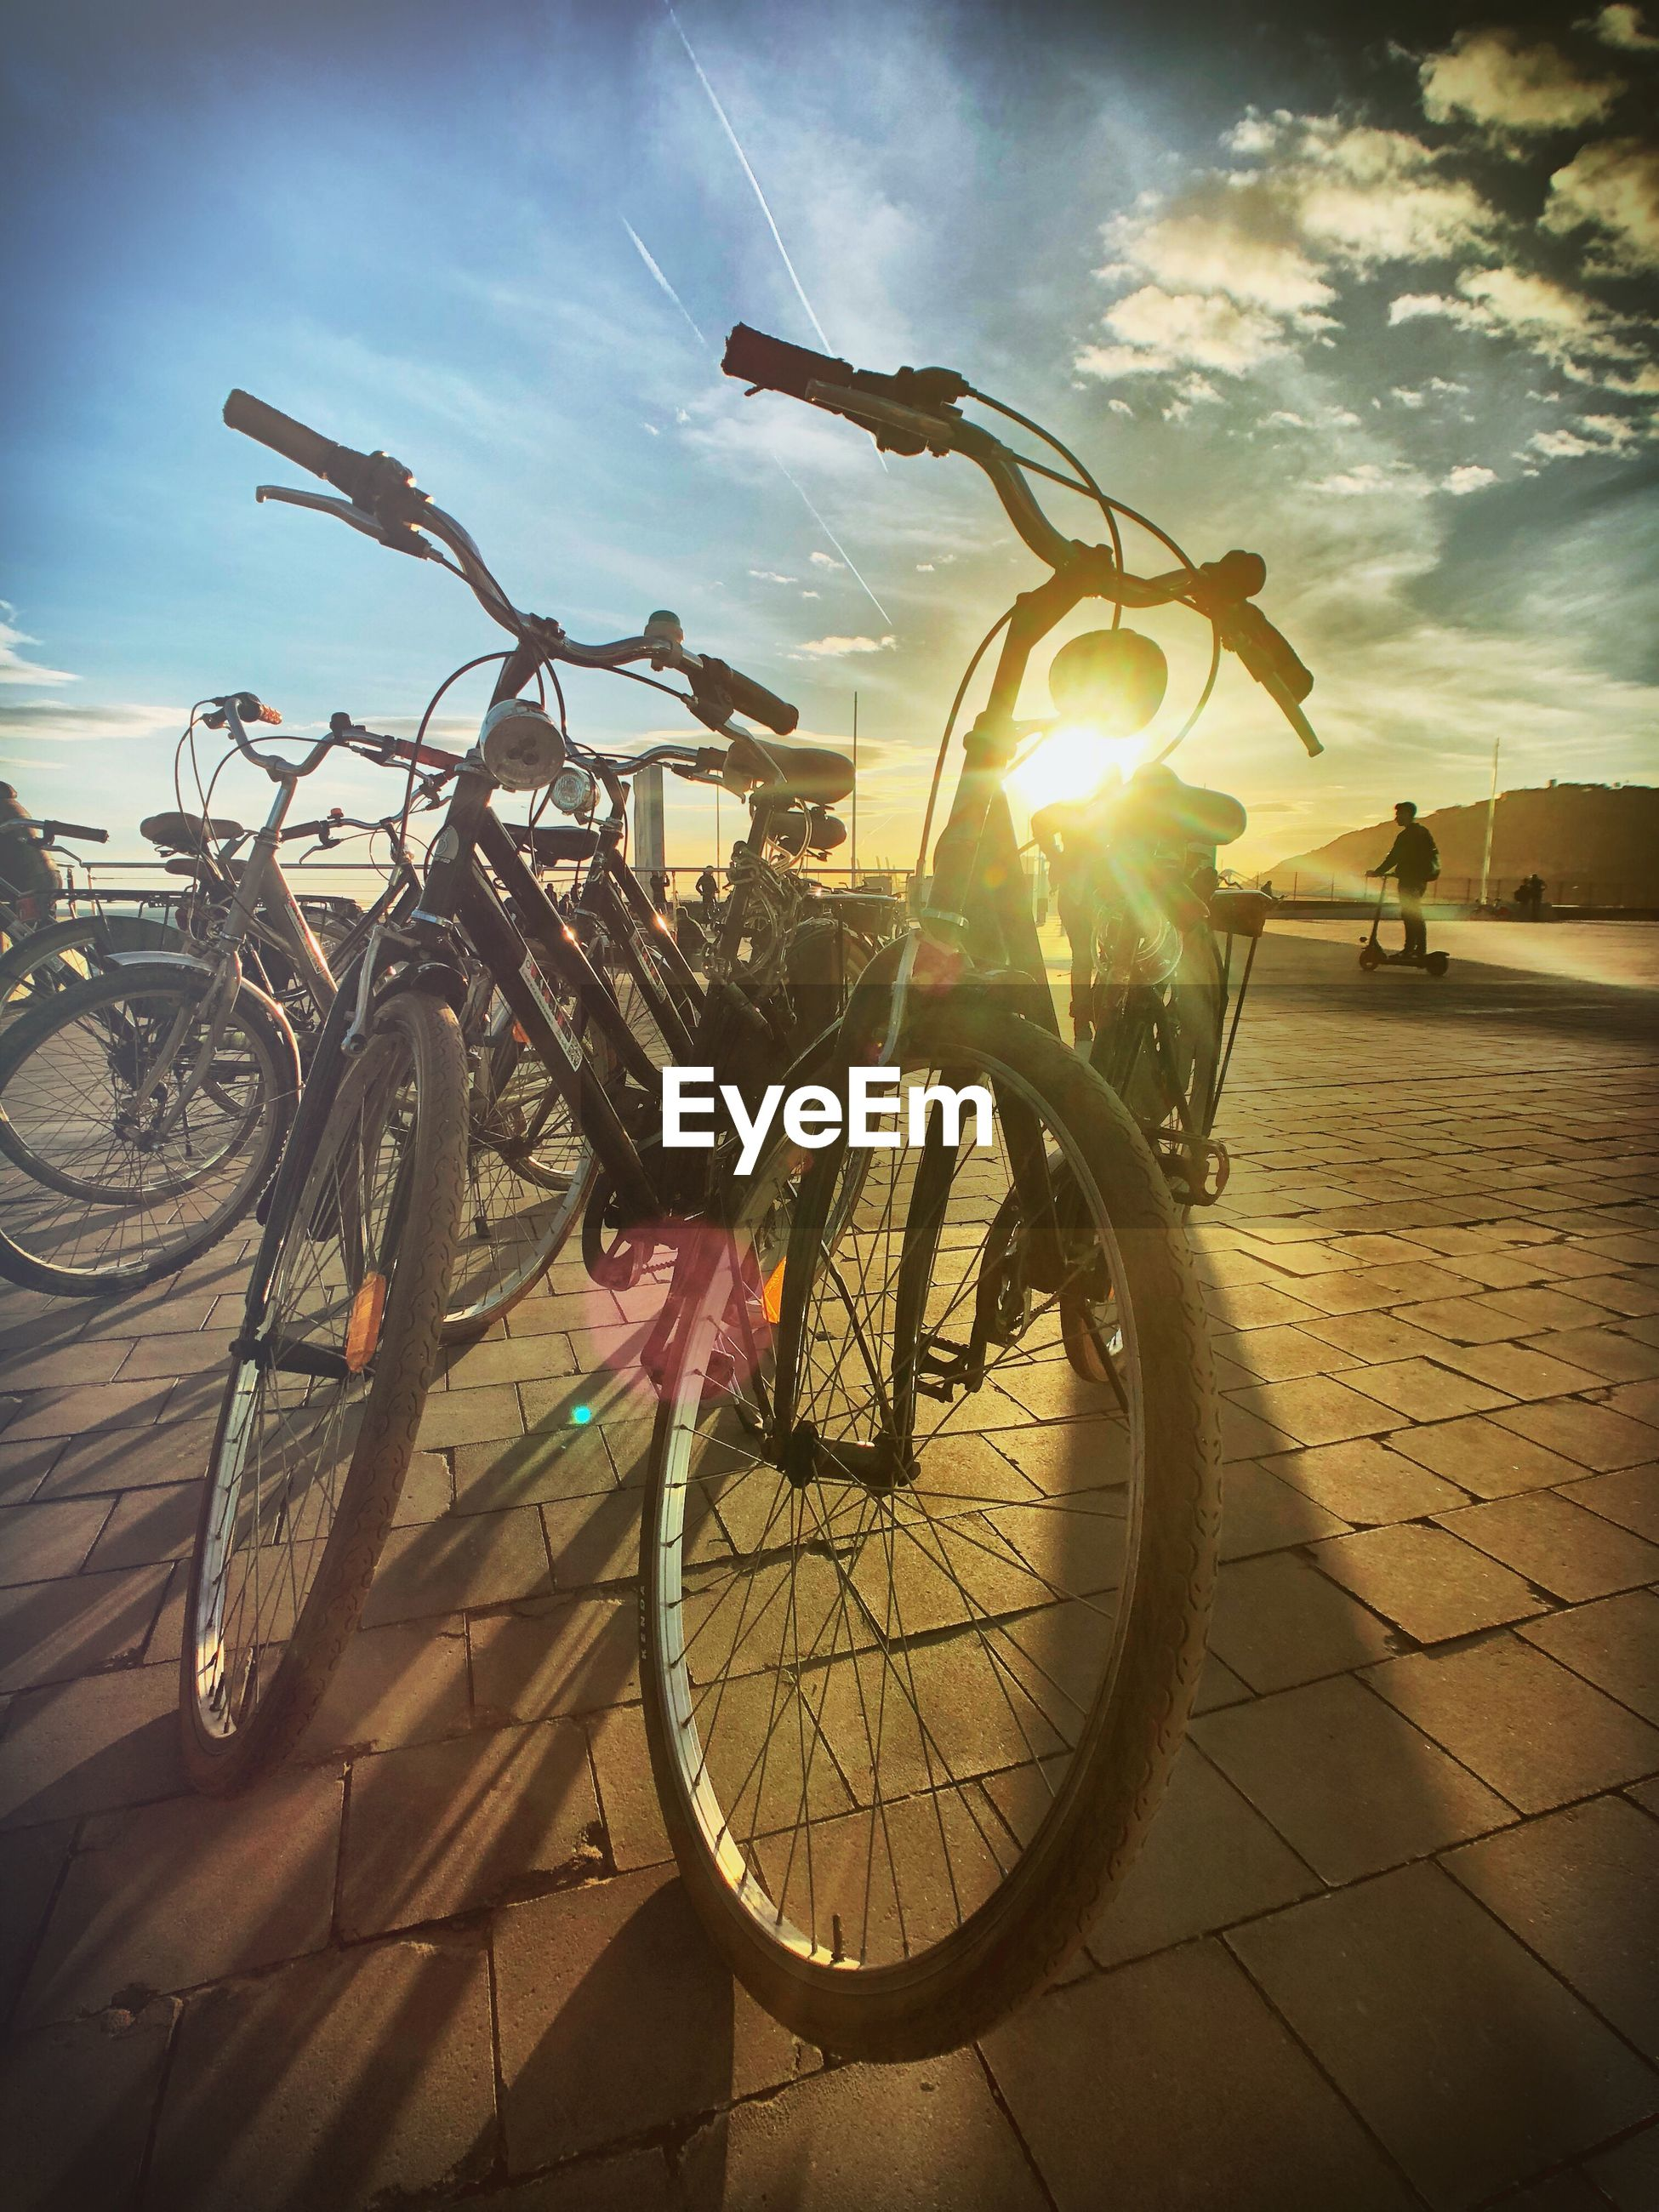 Bicycles parked on footpath against sky during sunset